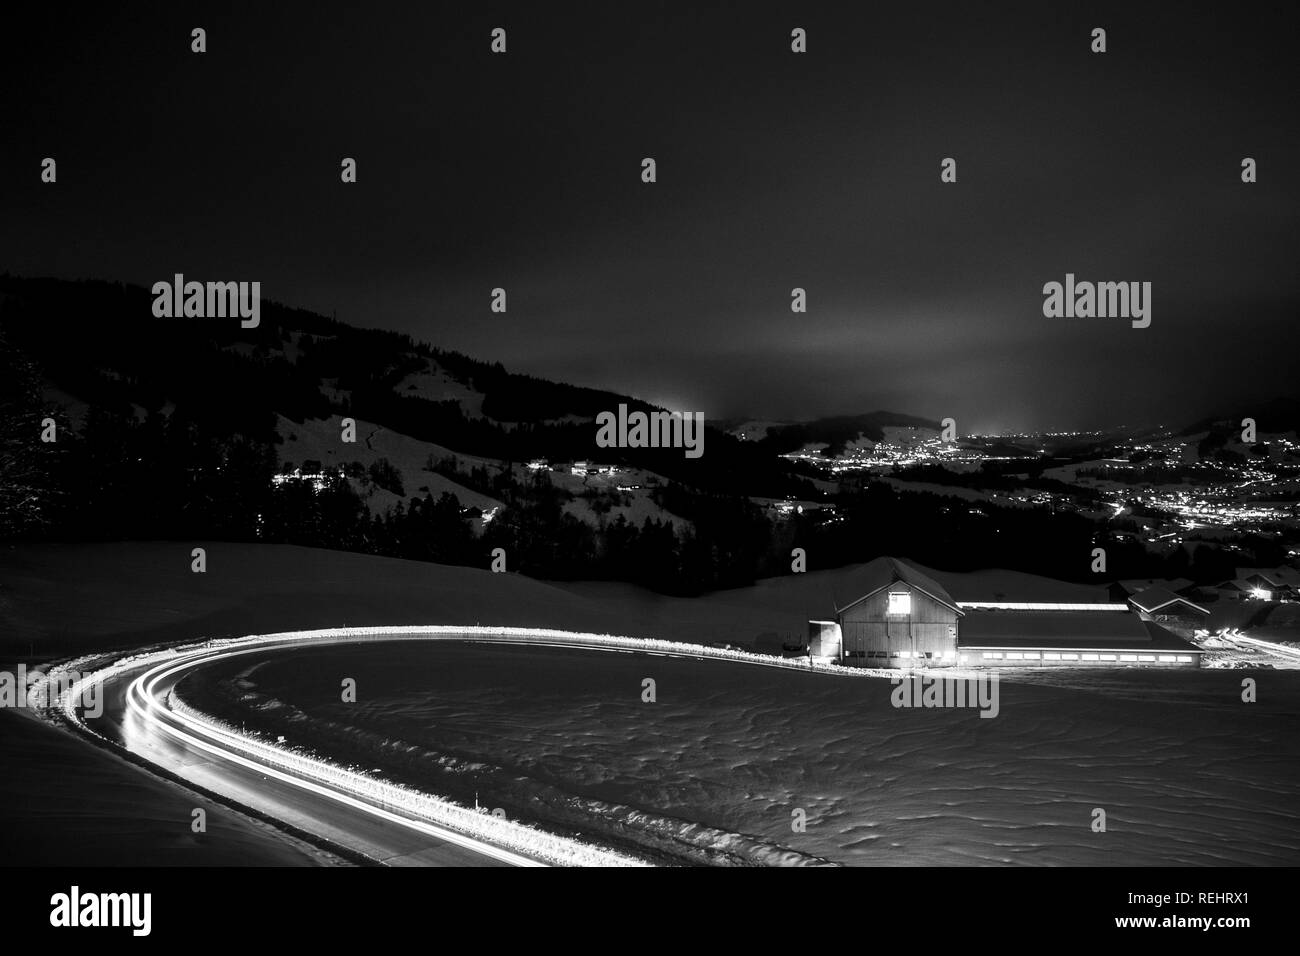 Long exposed night photography of cars driving through a snowy mountain road in the alps of Austria. - Stock Image